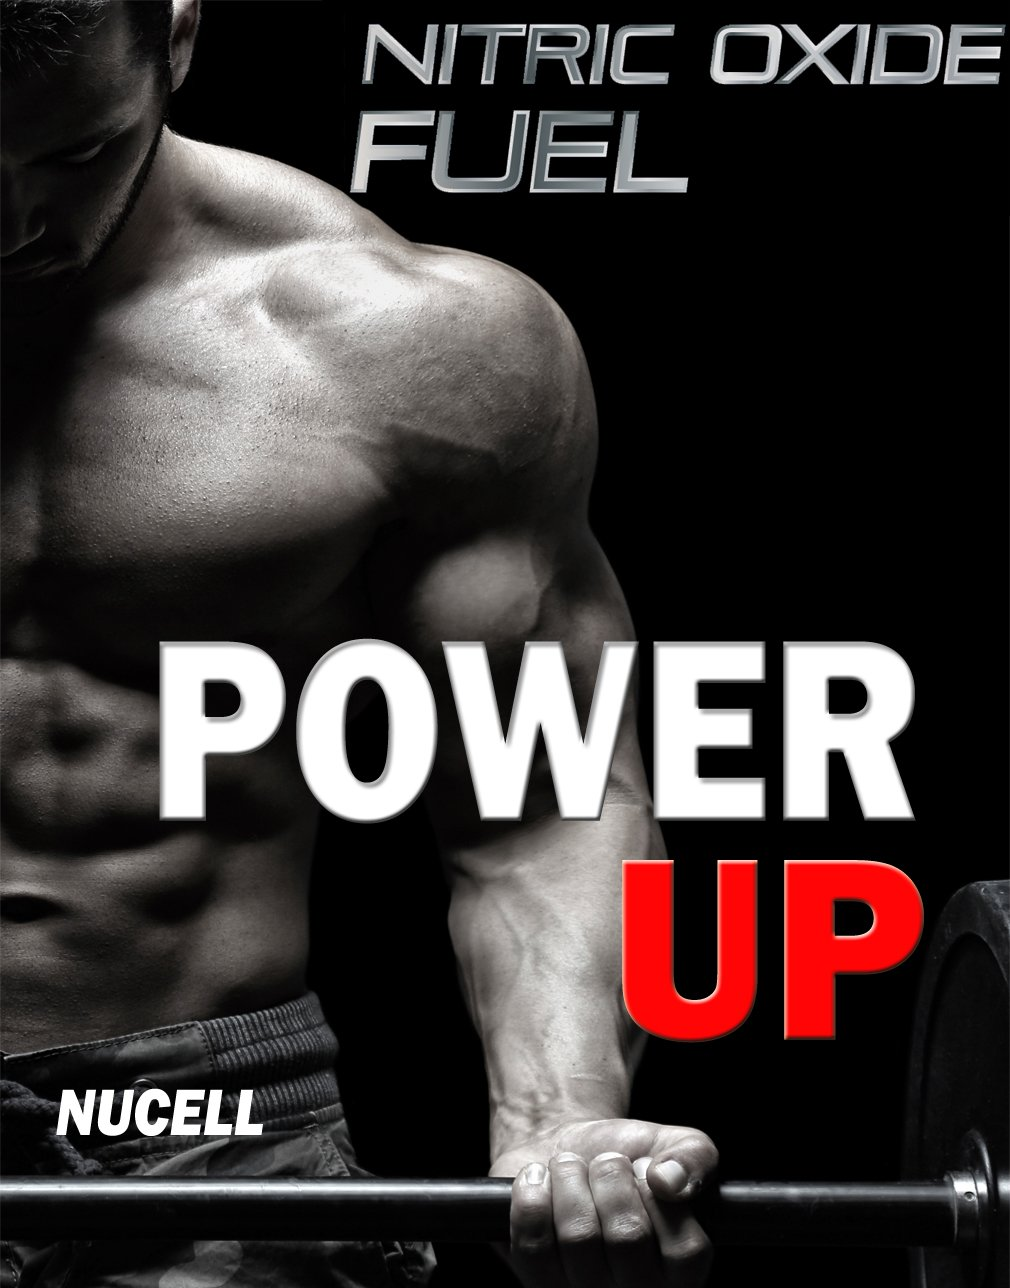 Nitric Oxide Fuel N.1 Effective Booster increase Energy, Stamina, Size, Physical Performance Extra Natural boost formula now with Muira Puama Increase Performance 90 Caps by Nucell (Image #4)